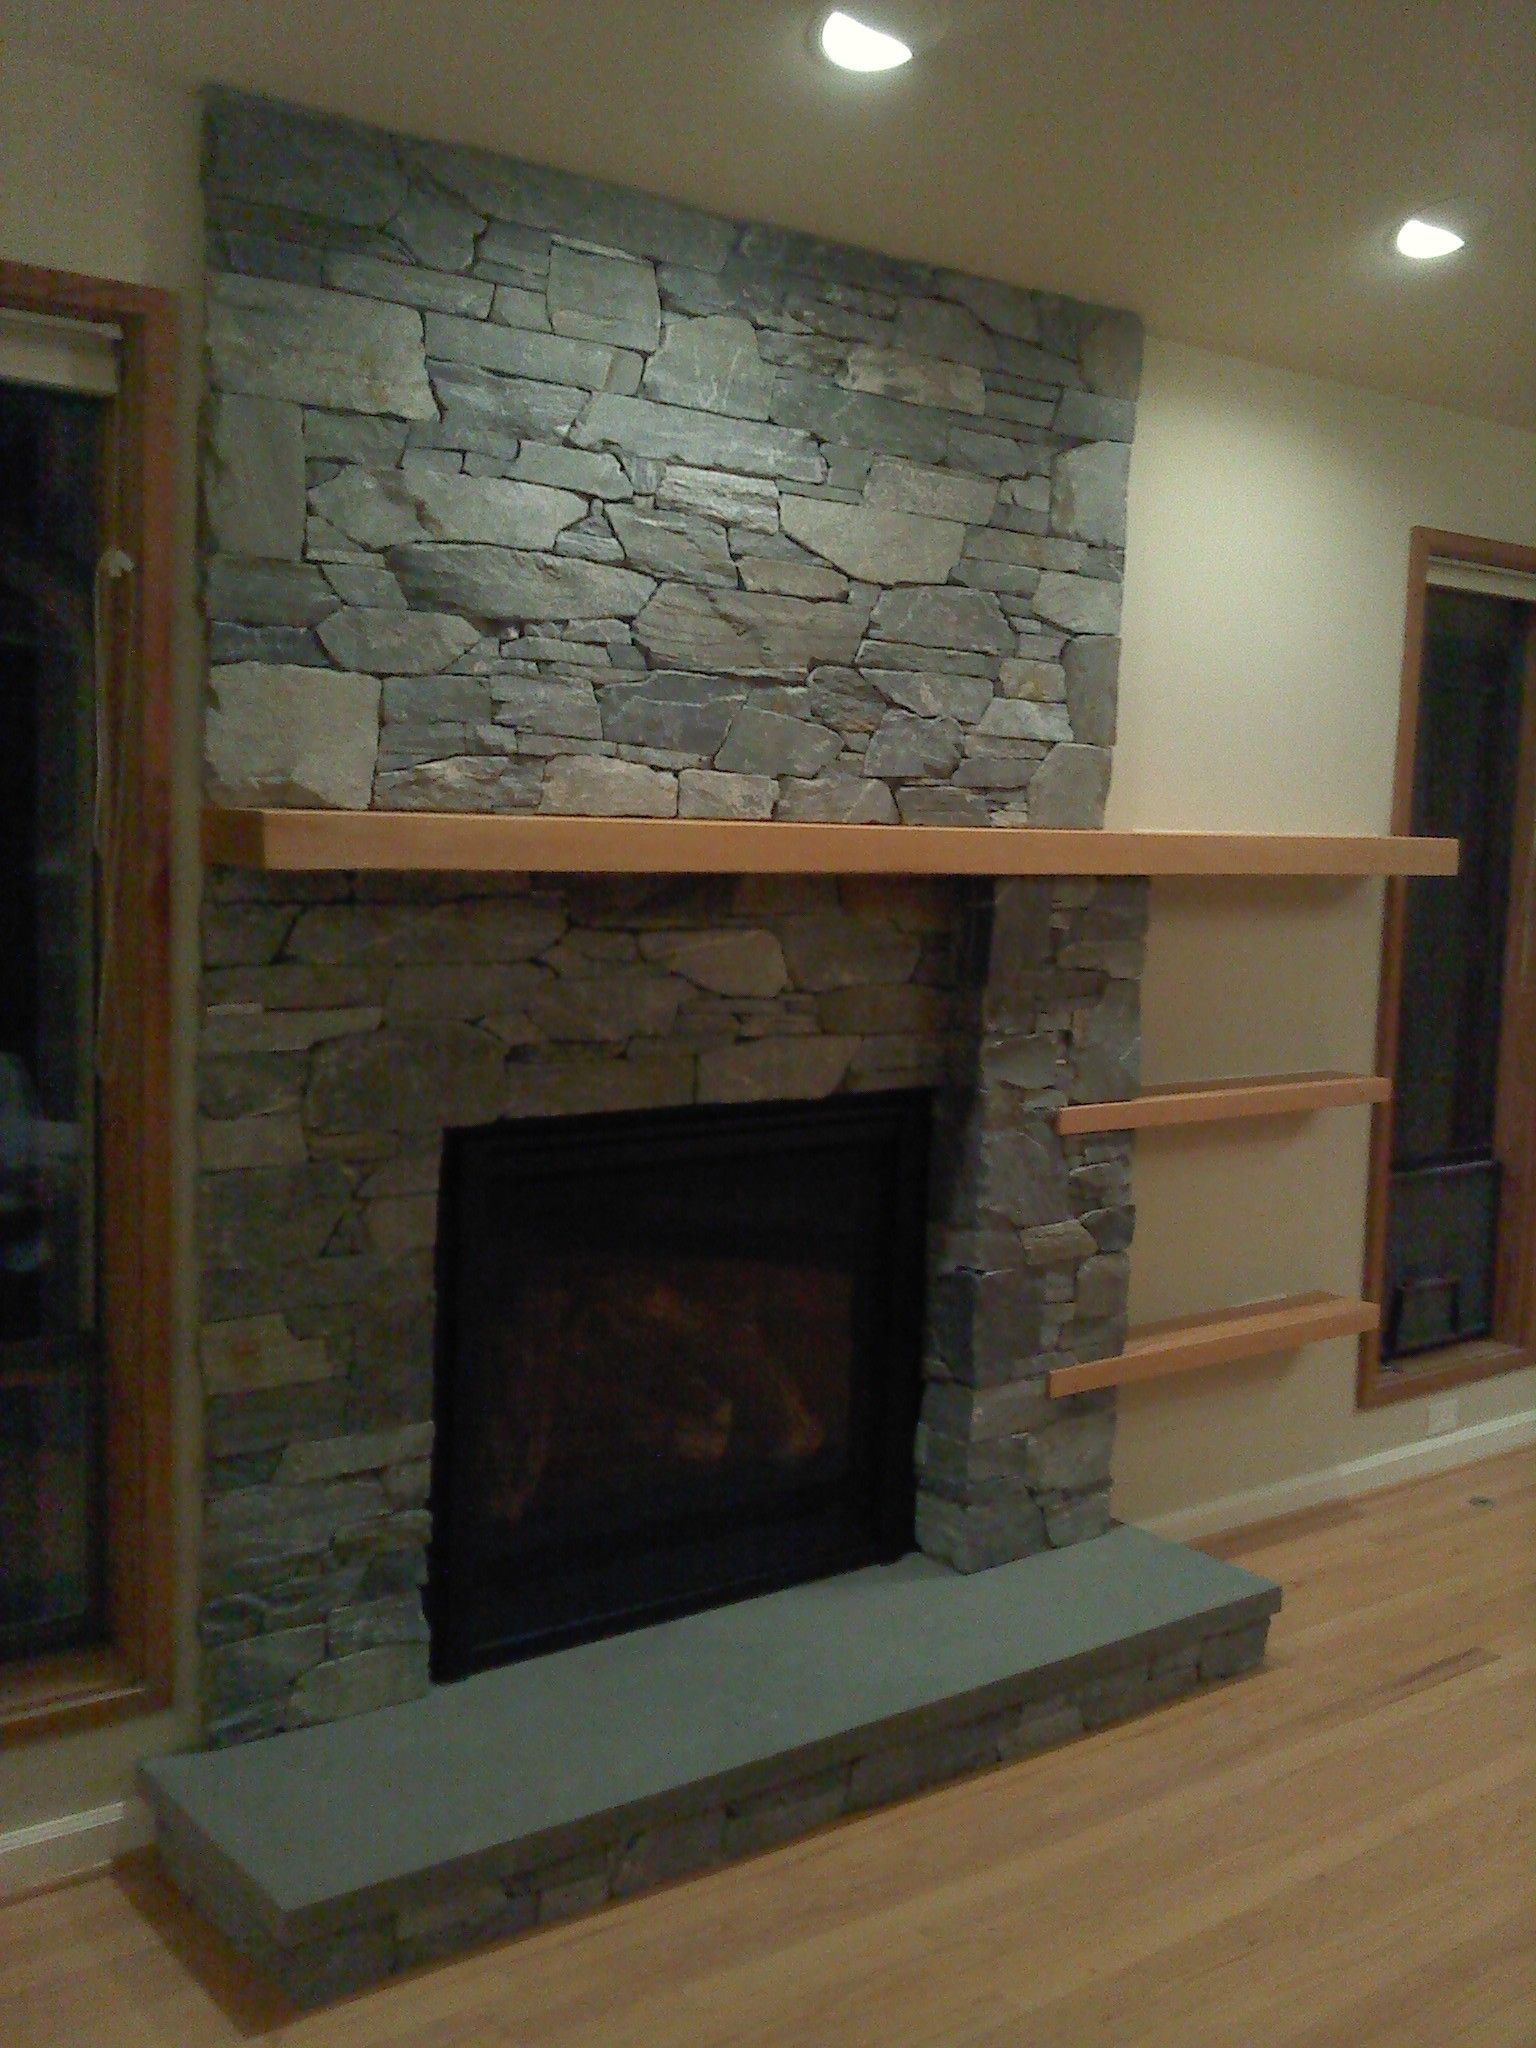 Exceptionnel Decoration, Beautiful Modern Minimalist Fireplace Design With Natural Stone  Fireplace Mantel Surround And Black Facing Also Simple Shelf Ideas ~  Attractive ...